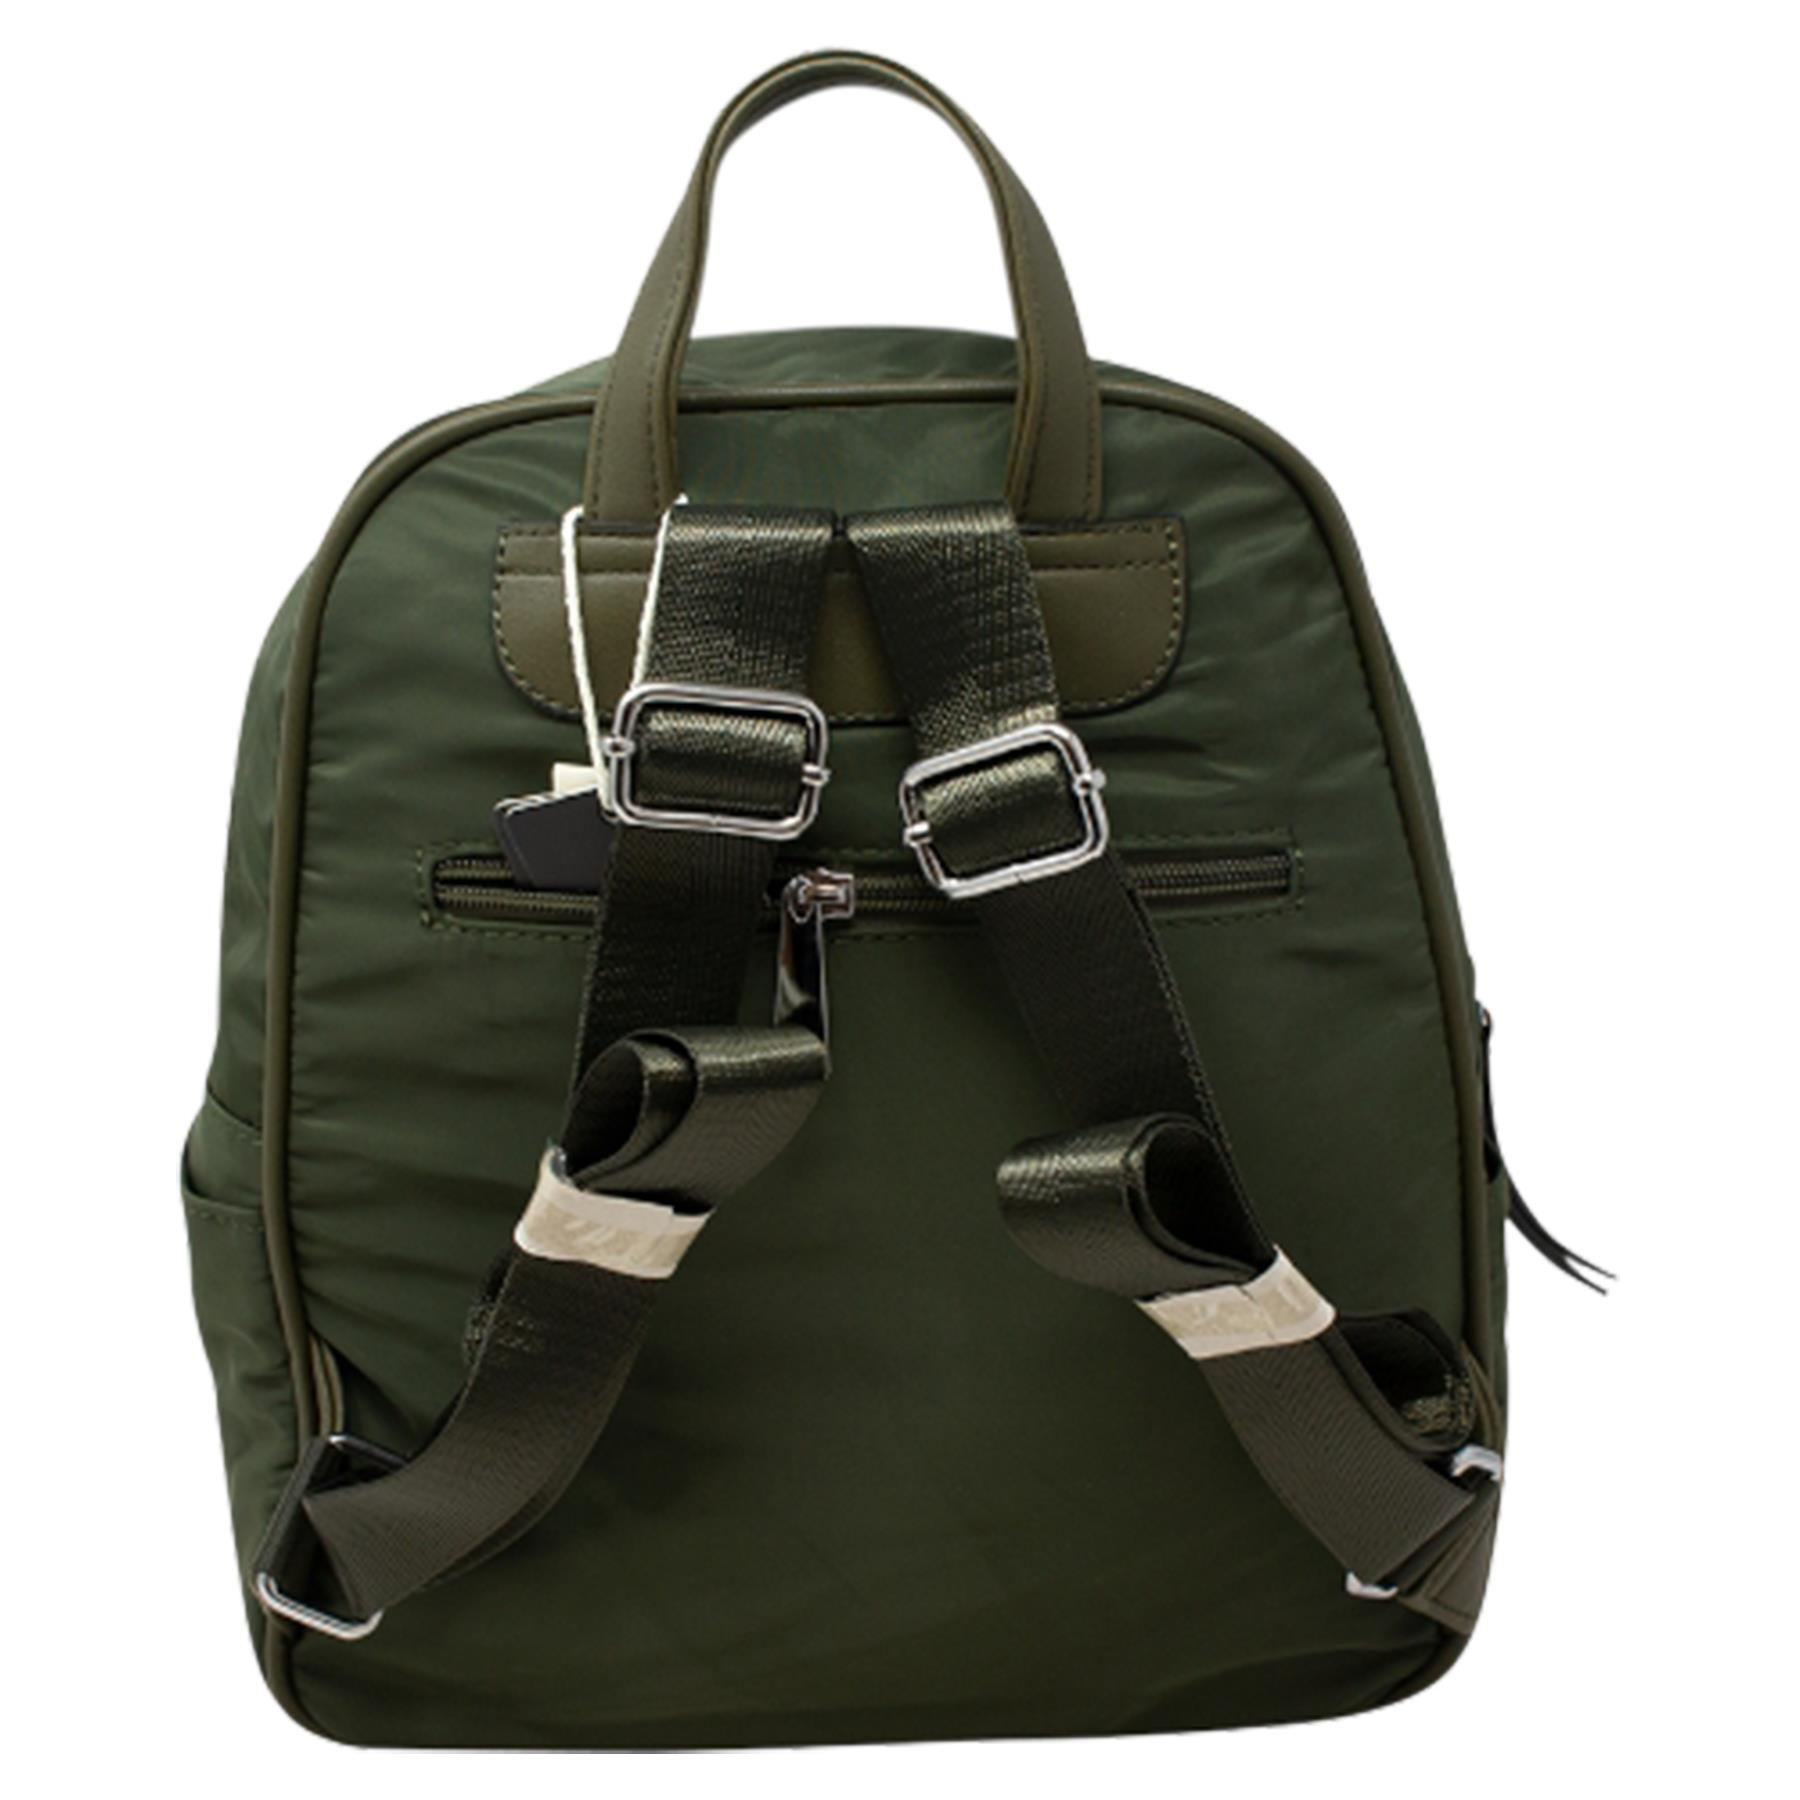 New-Unisex-Plain-Nylon-Showerproof-School-College-Backpack-Rucksack thumbnail 13